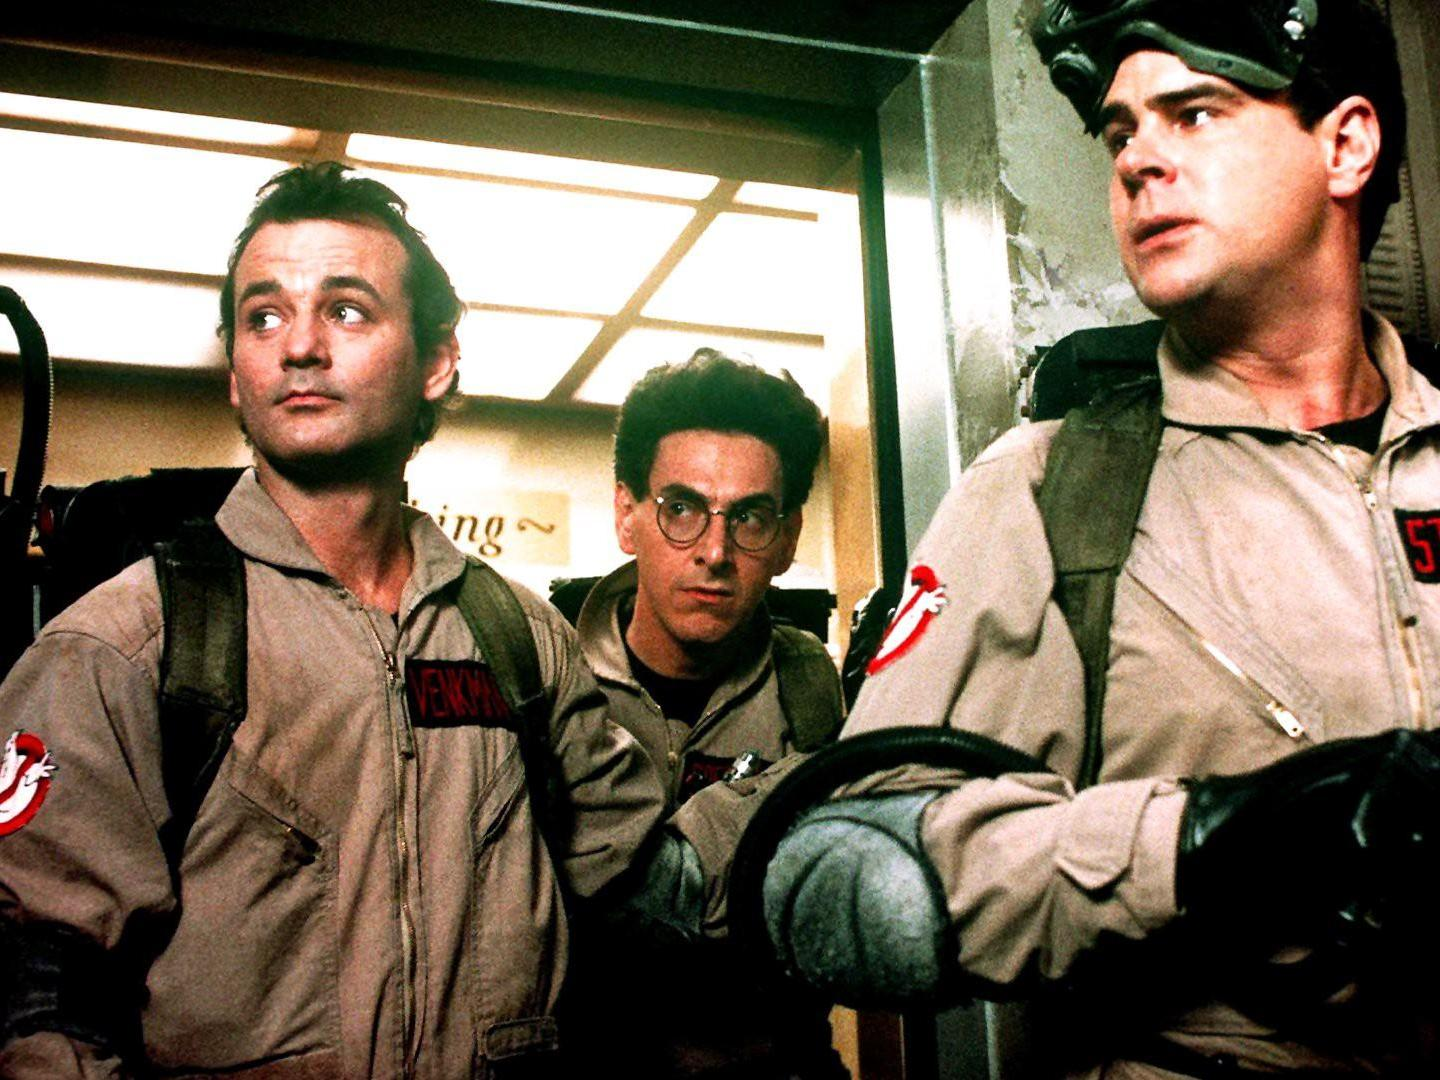 Ghostbusters sequel: New film set in original universe to be directed by Jason Reitman